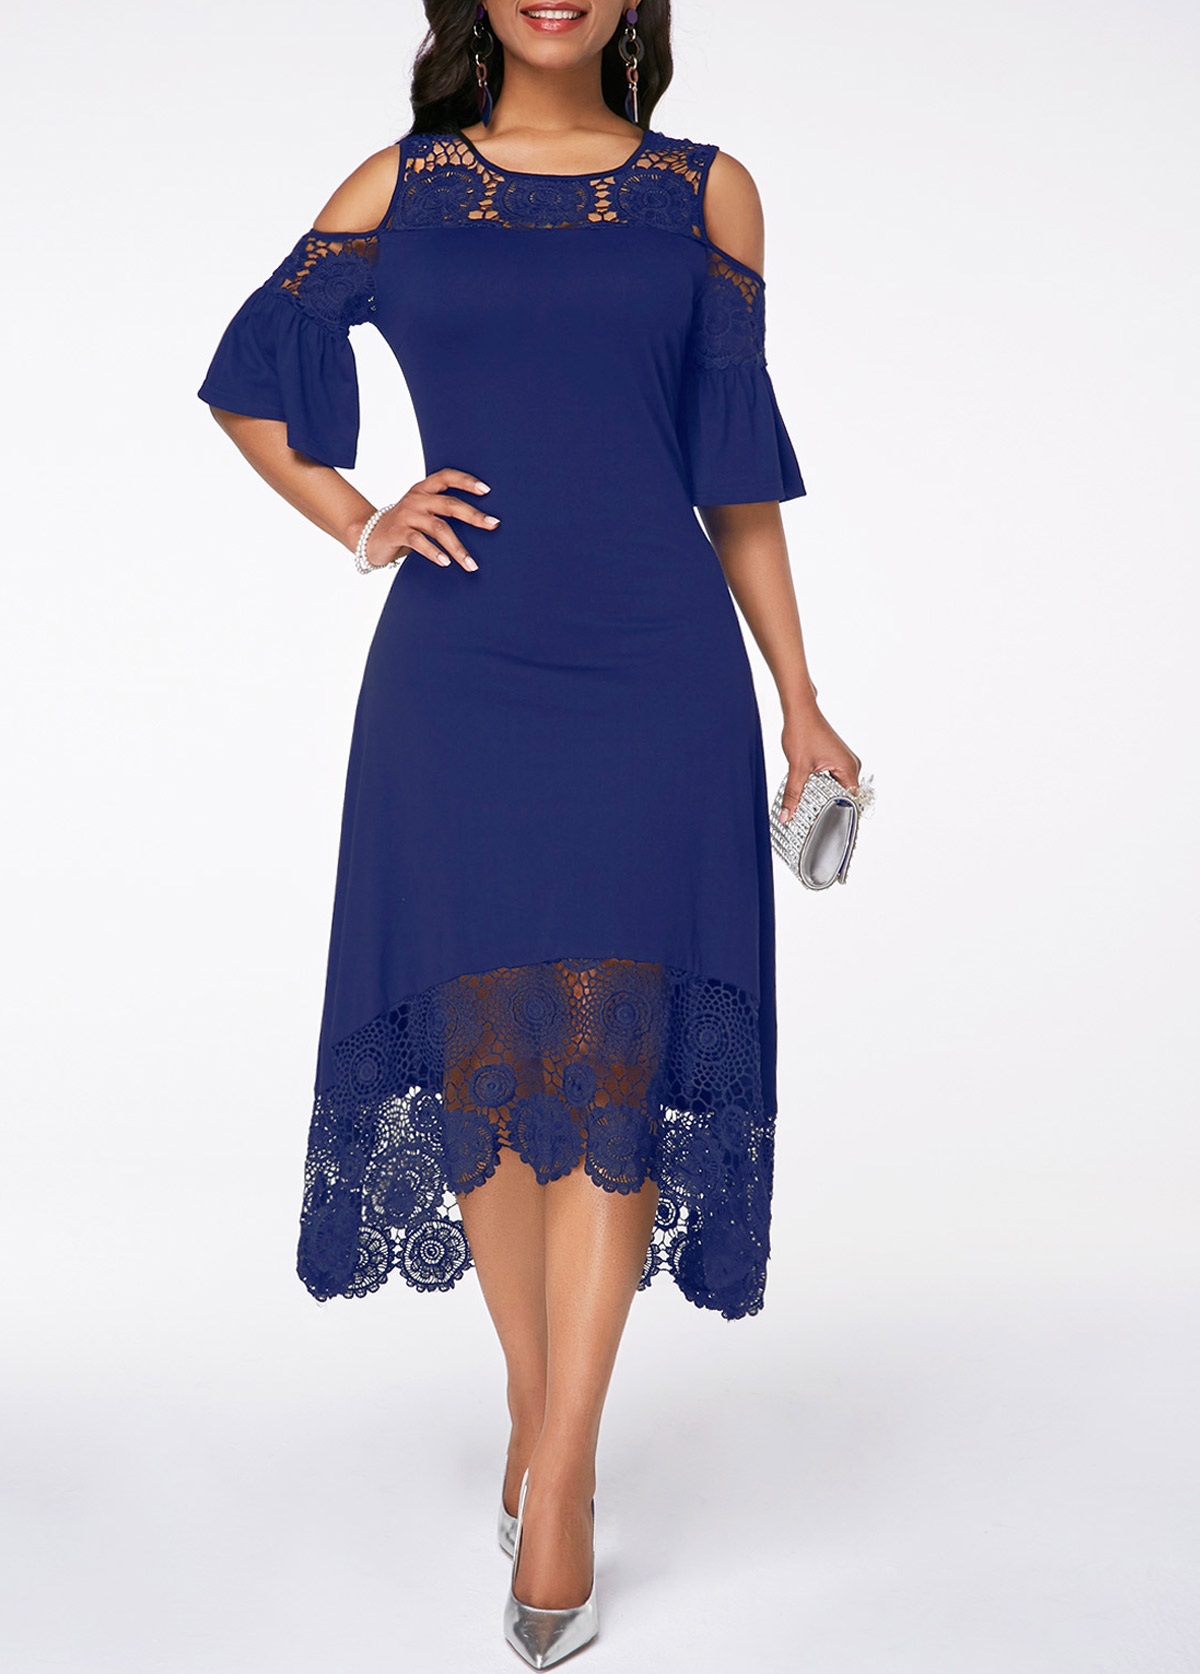 ROTITA Cold Shoulder Flare Cuff Lace Panel Navy Blue Dress